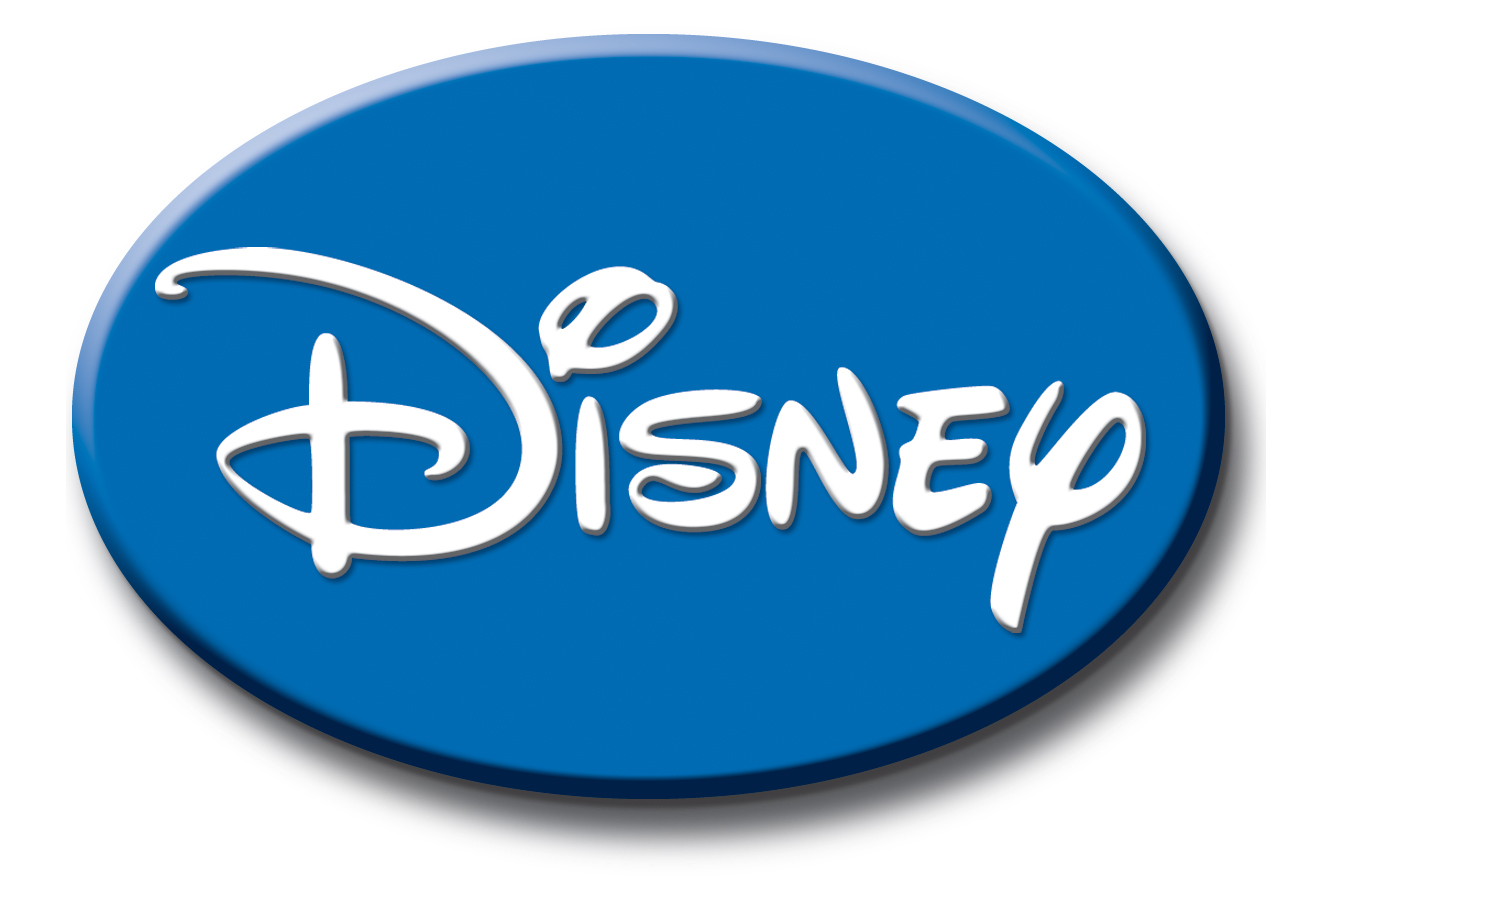 Disney logo Wallpaper